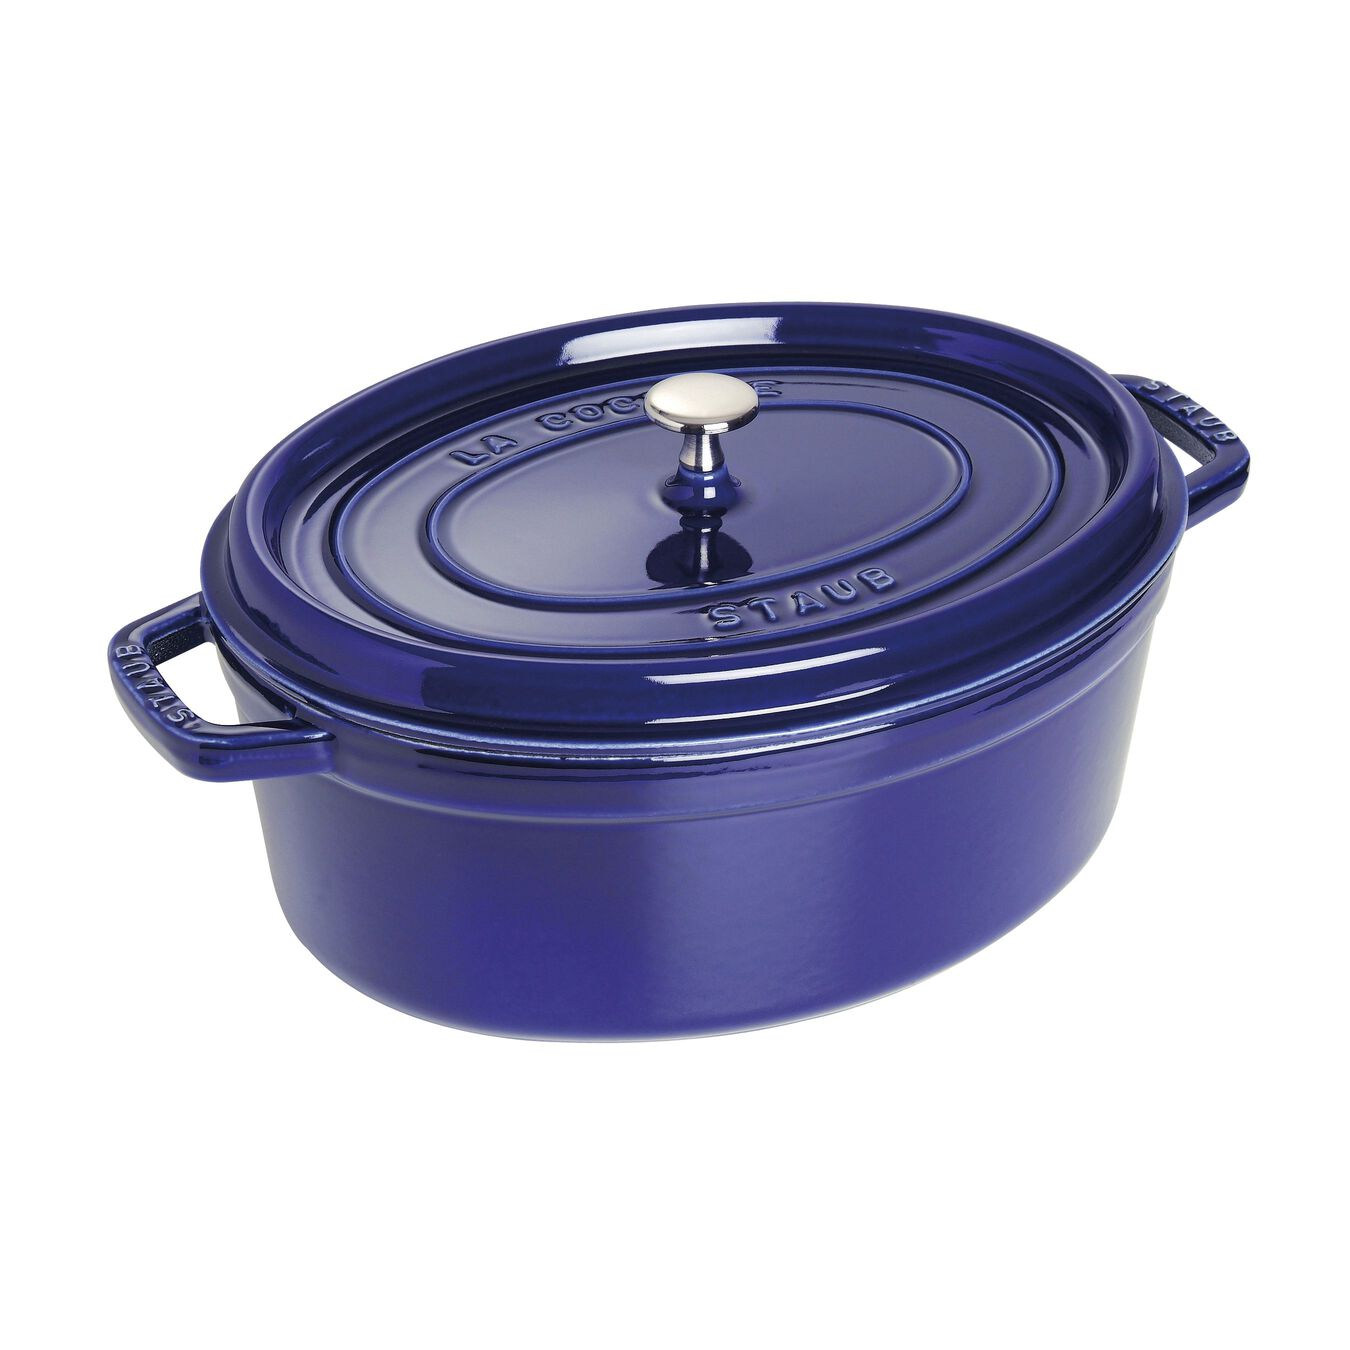 5,5 l Cast iron oval Poêle à frire en fonte, Dark-Blue,,large 1